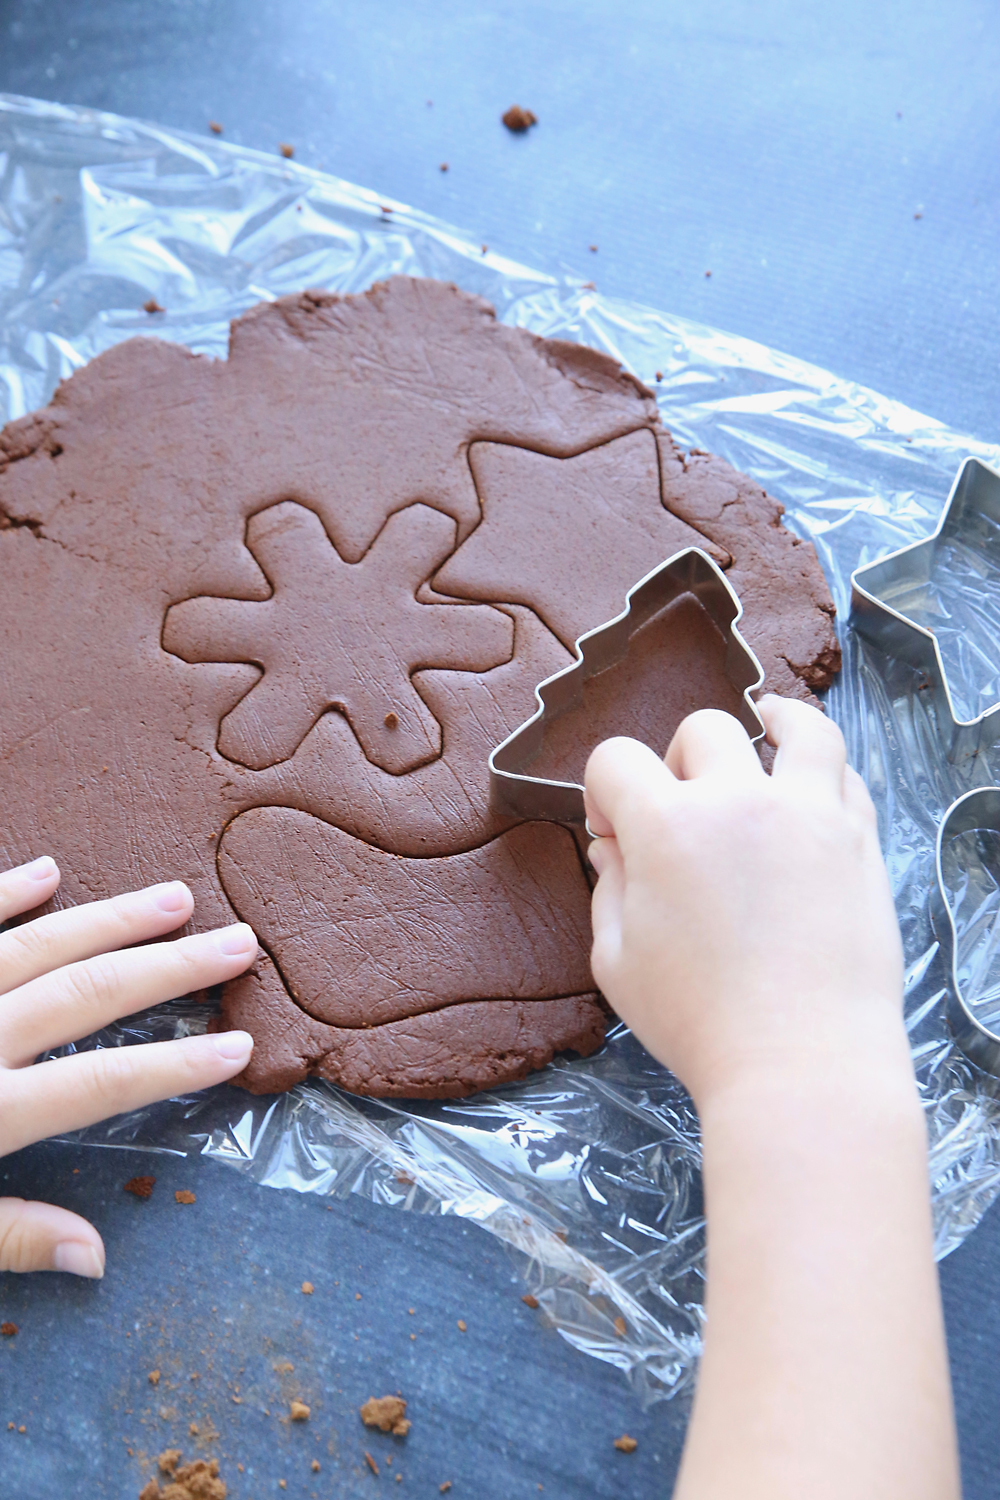 Use cookie cutters to cut out the cinnamon ornaments.